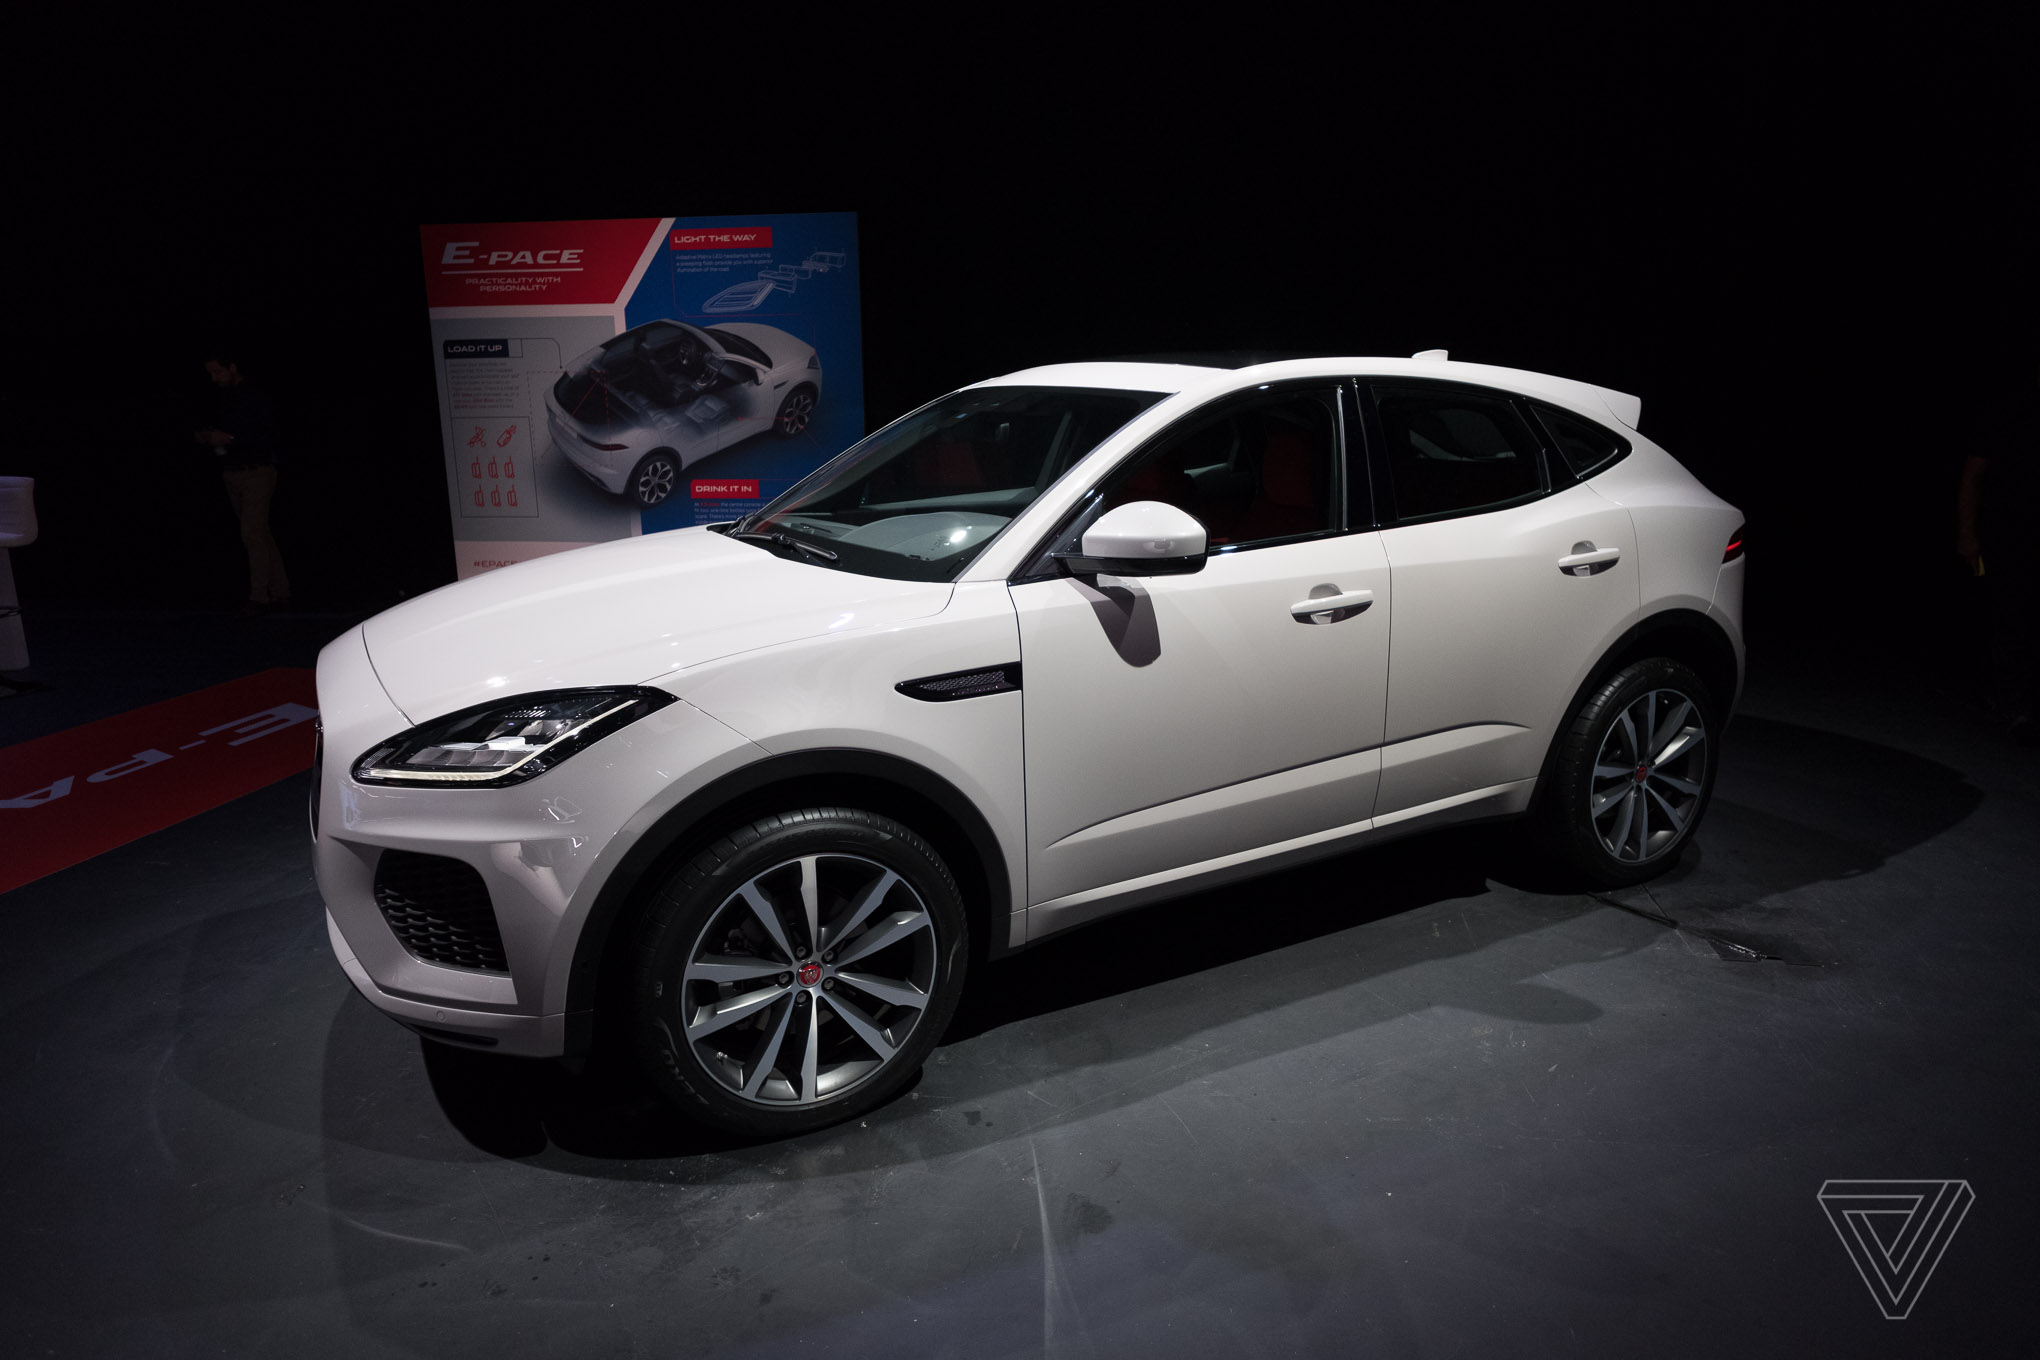 Jaguar E Pace Debut In London July 2017 Photo By Vlad Savov The Verge